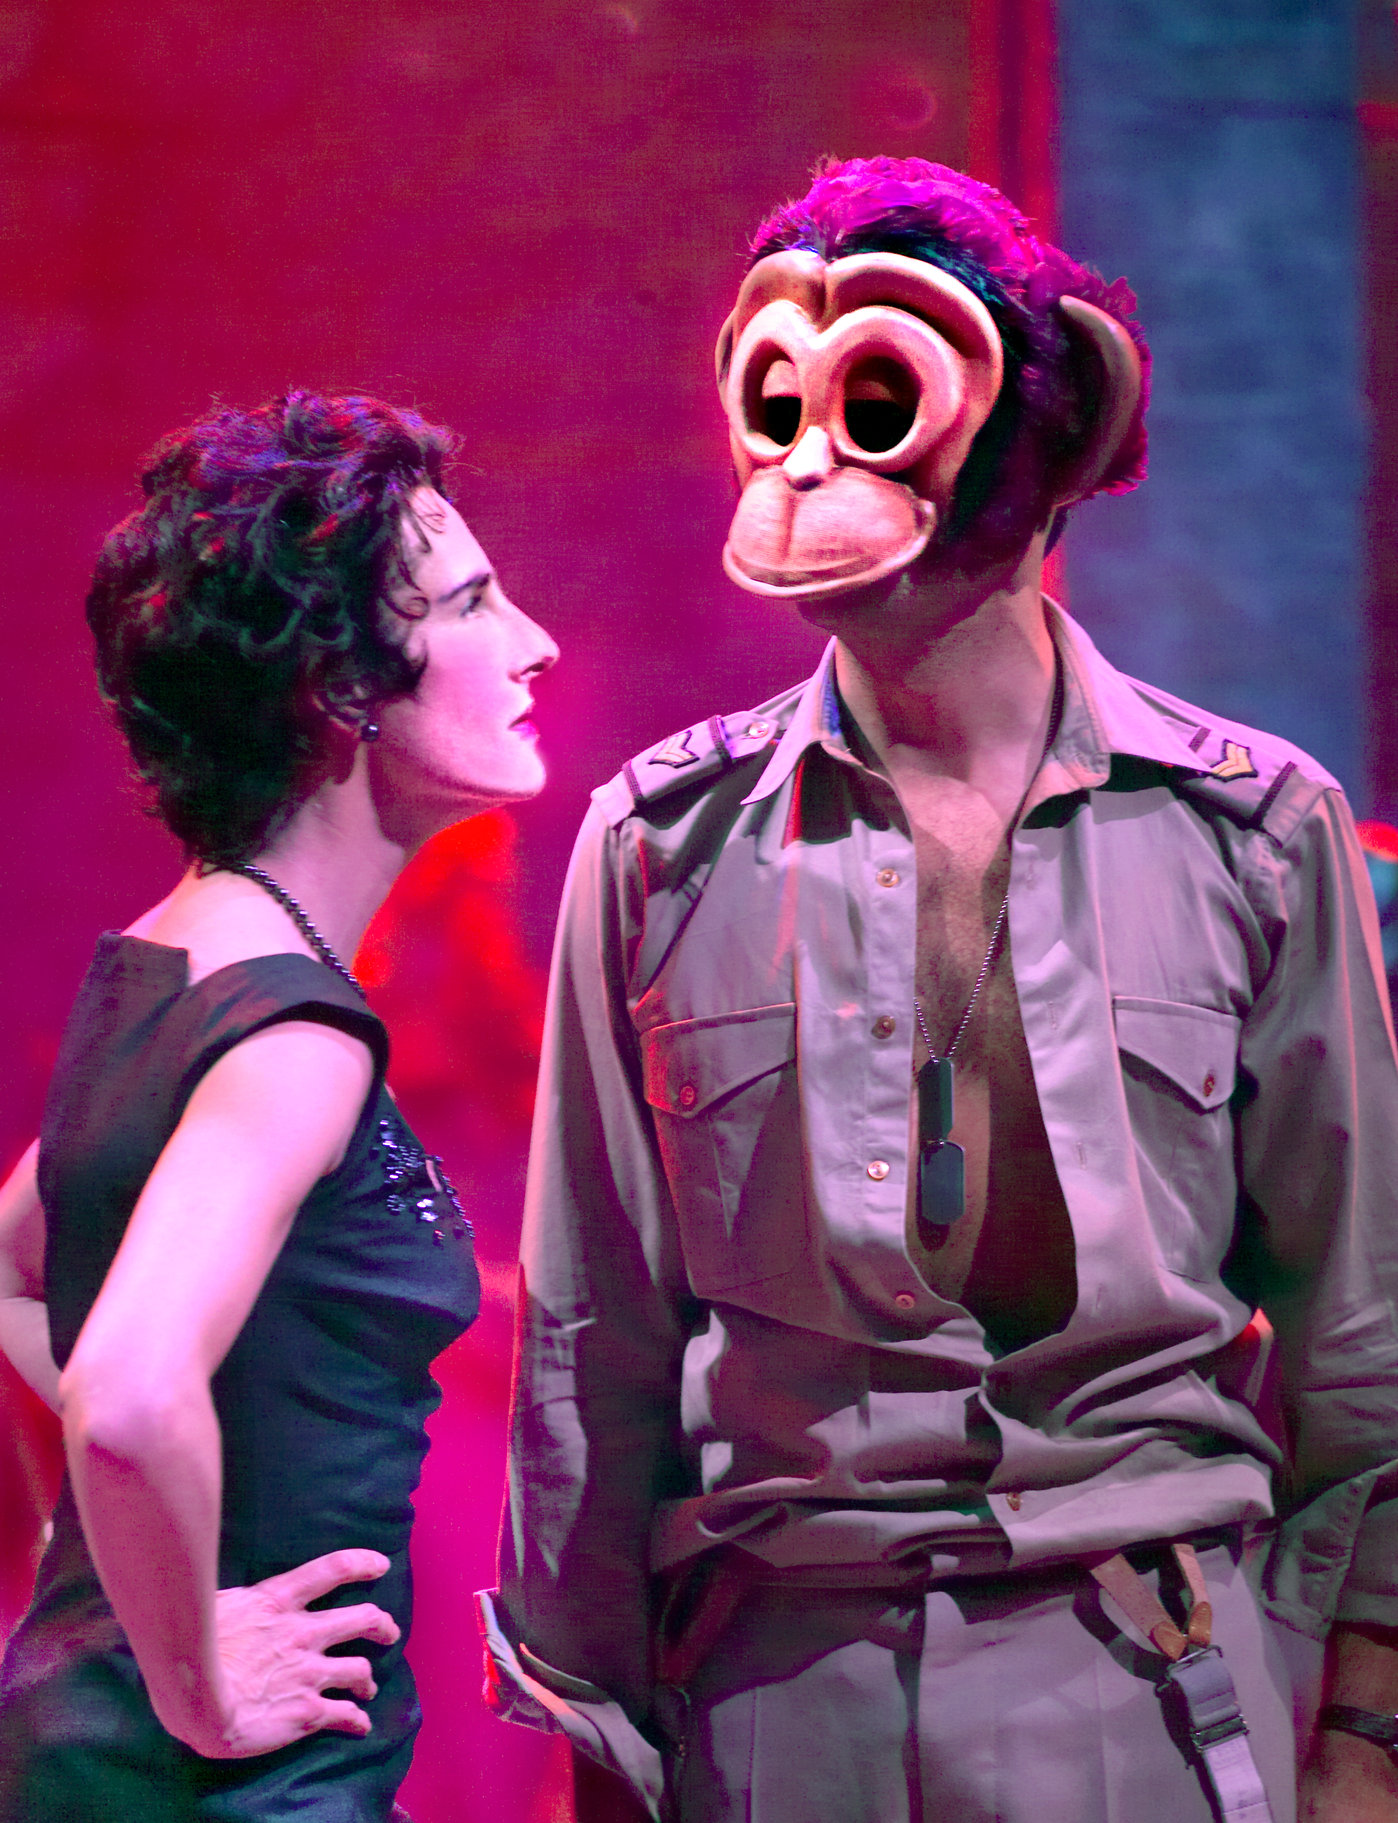 Beatrice talks to Benedick, who wears a monkey mask.